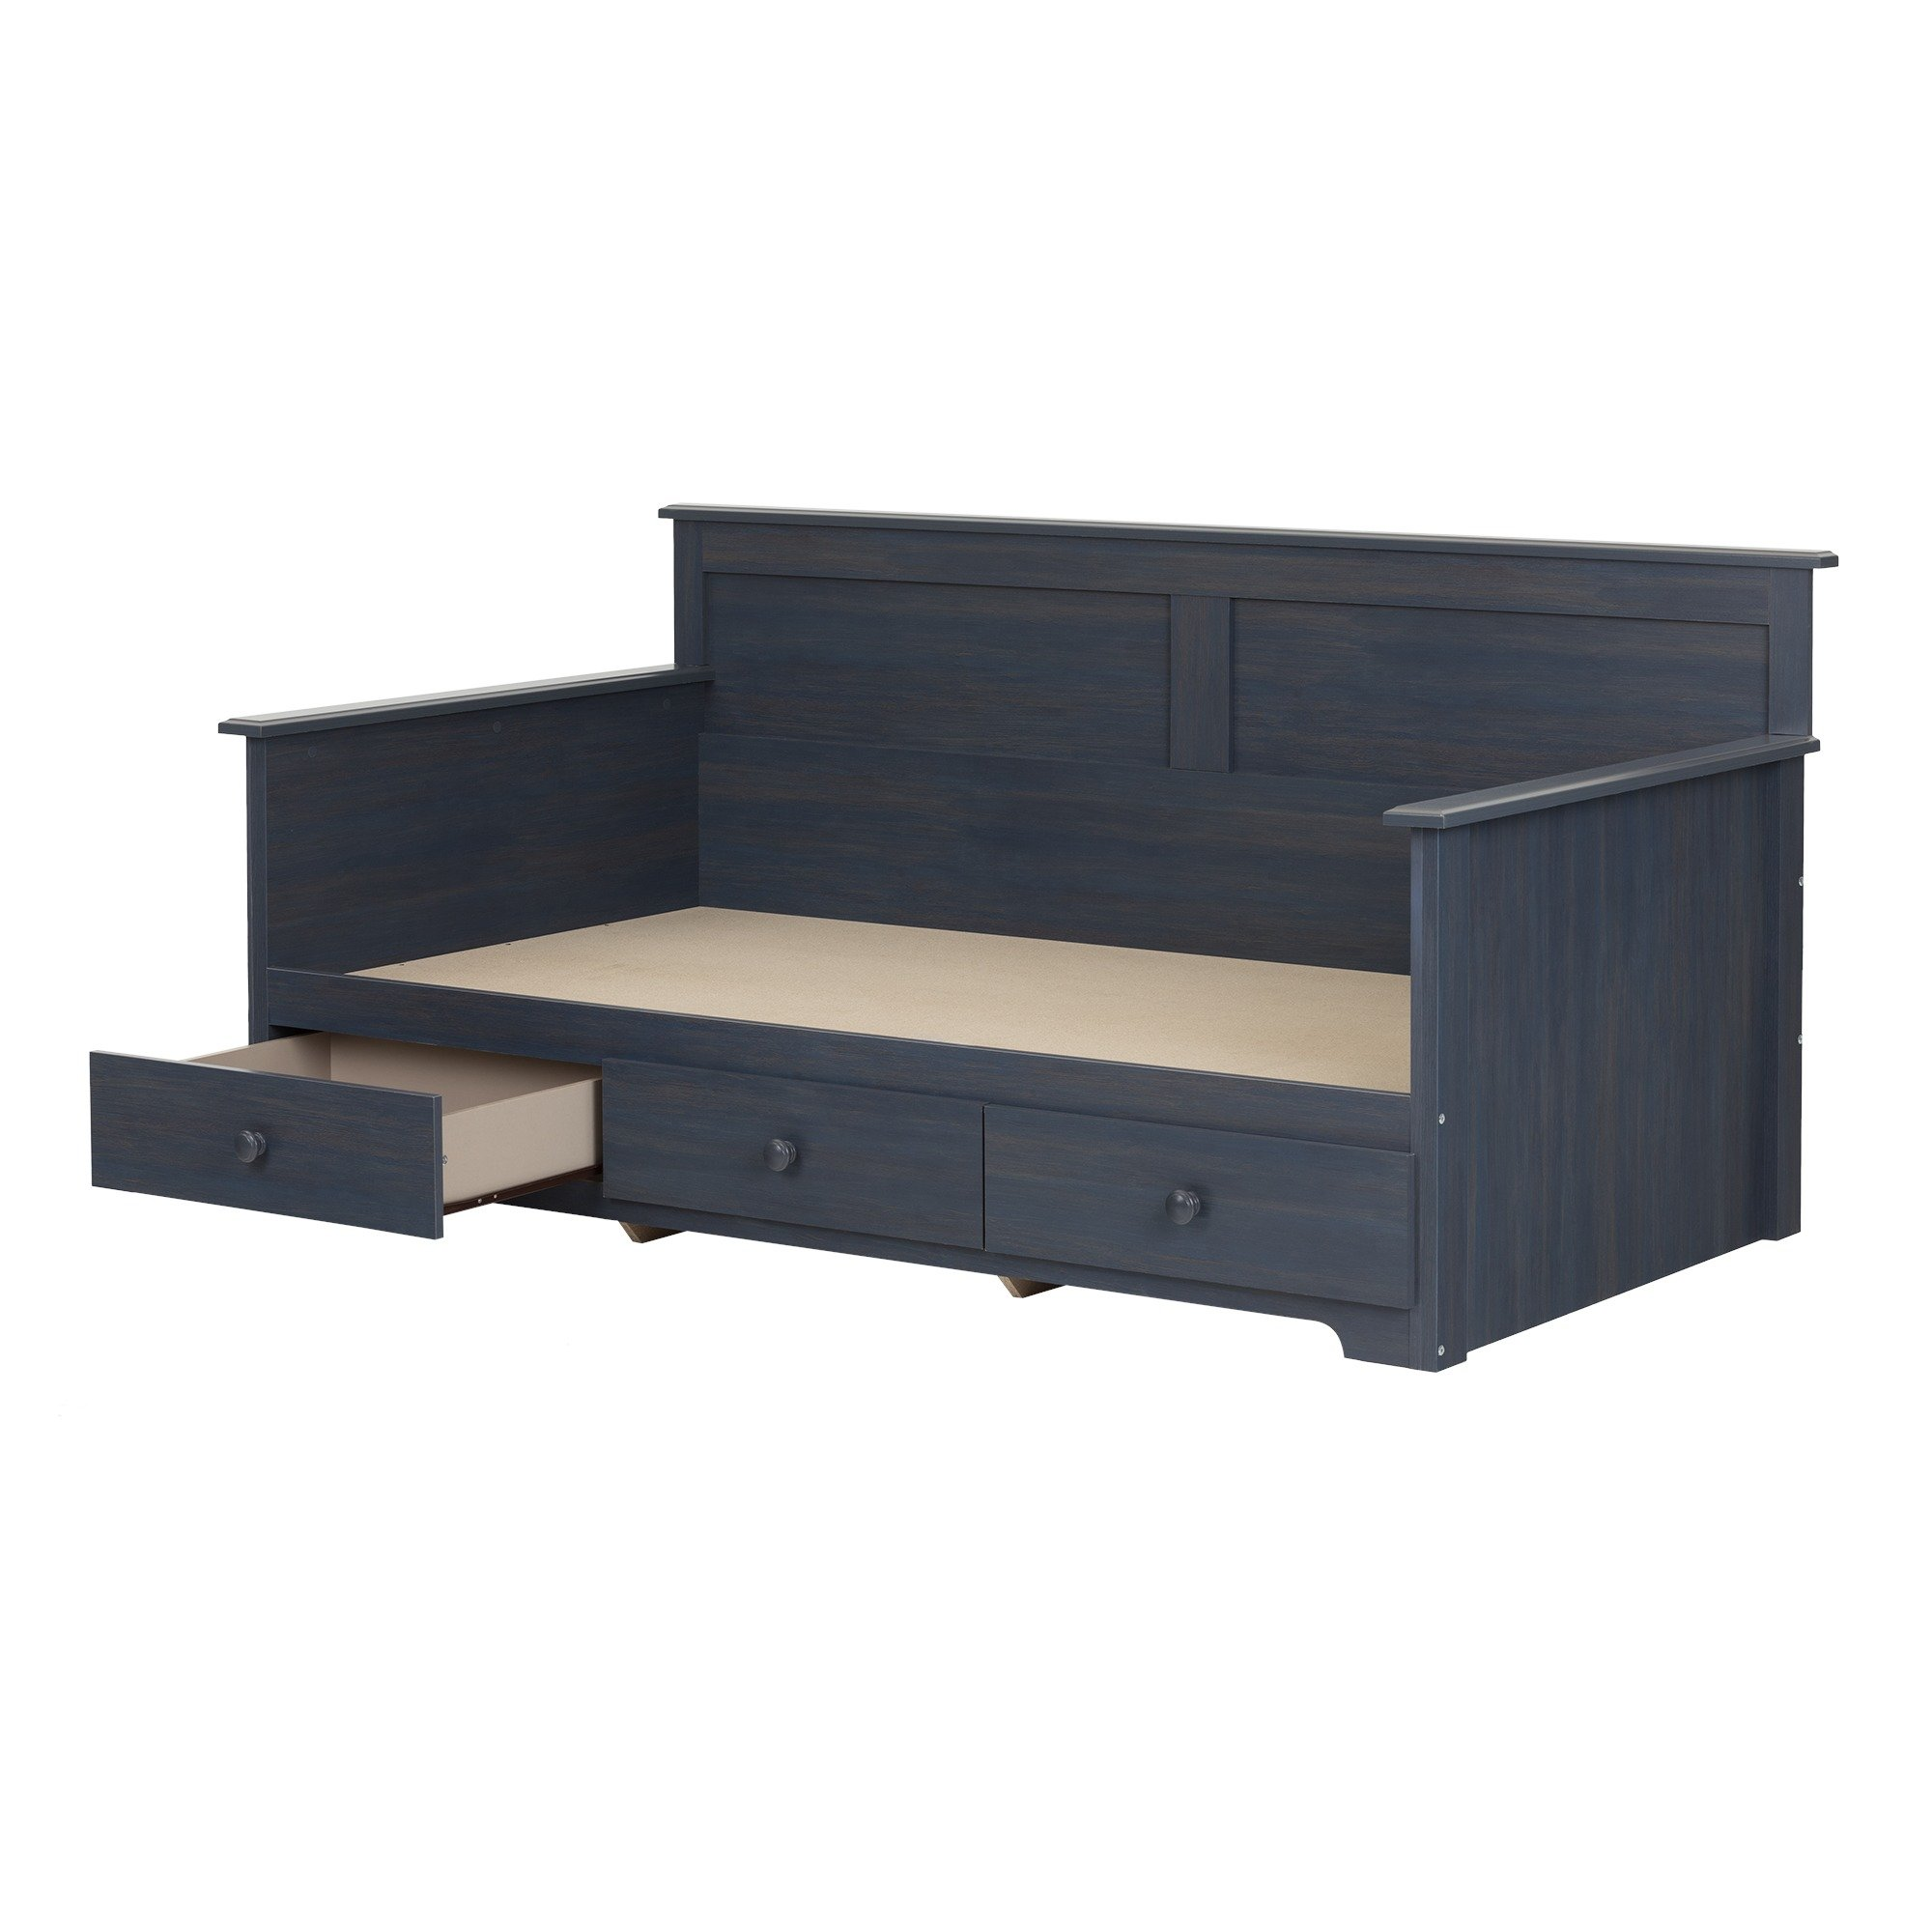 South Shore Summer Breeze Daybed with Storage (39''), Twin, Blueberry